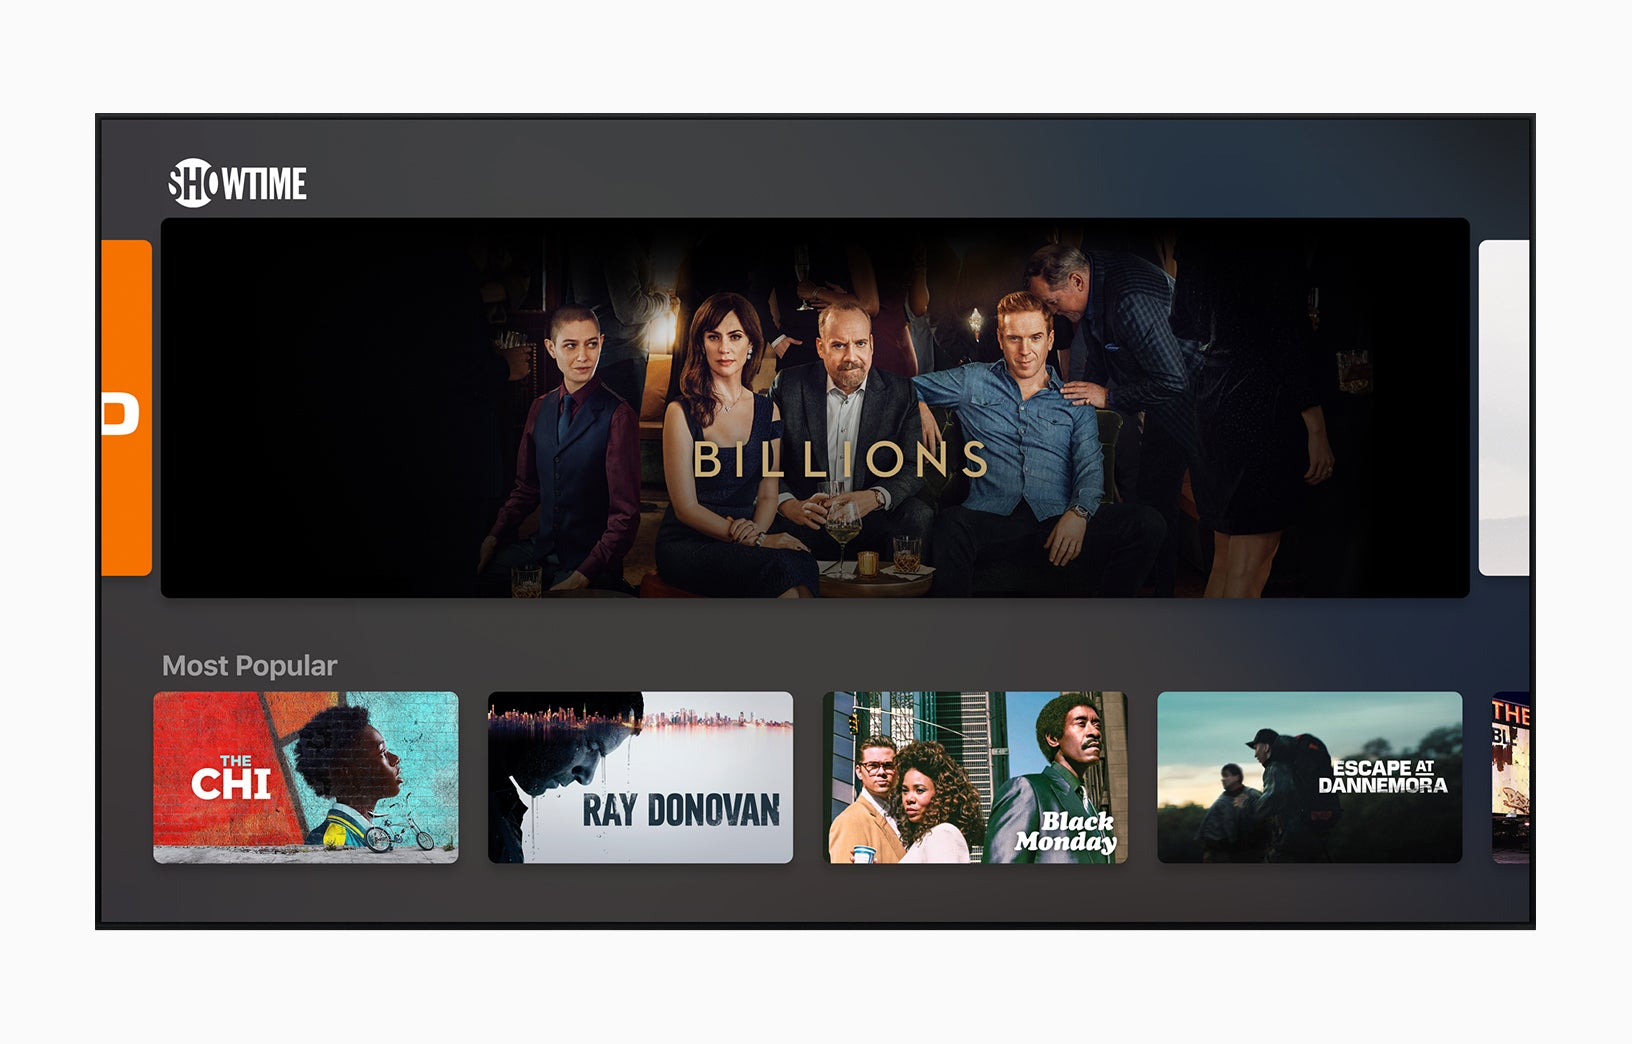 QnA VBage Apple TV Channels Is a Big Change to Apple's Subscription Model